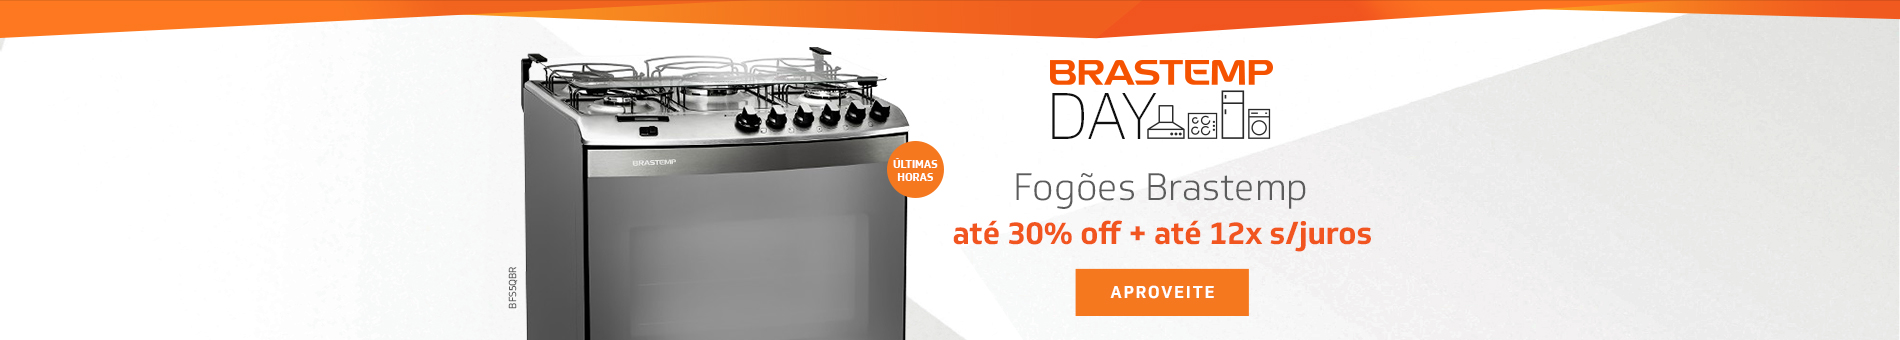 4 - Brastemp Day Fogoes - Segunda